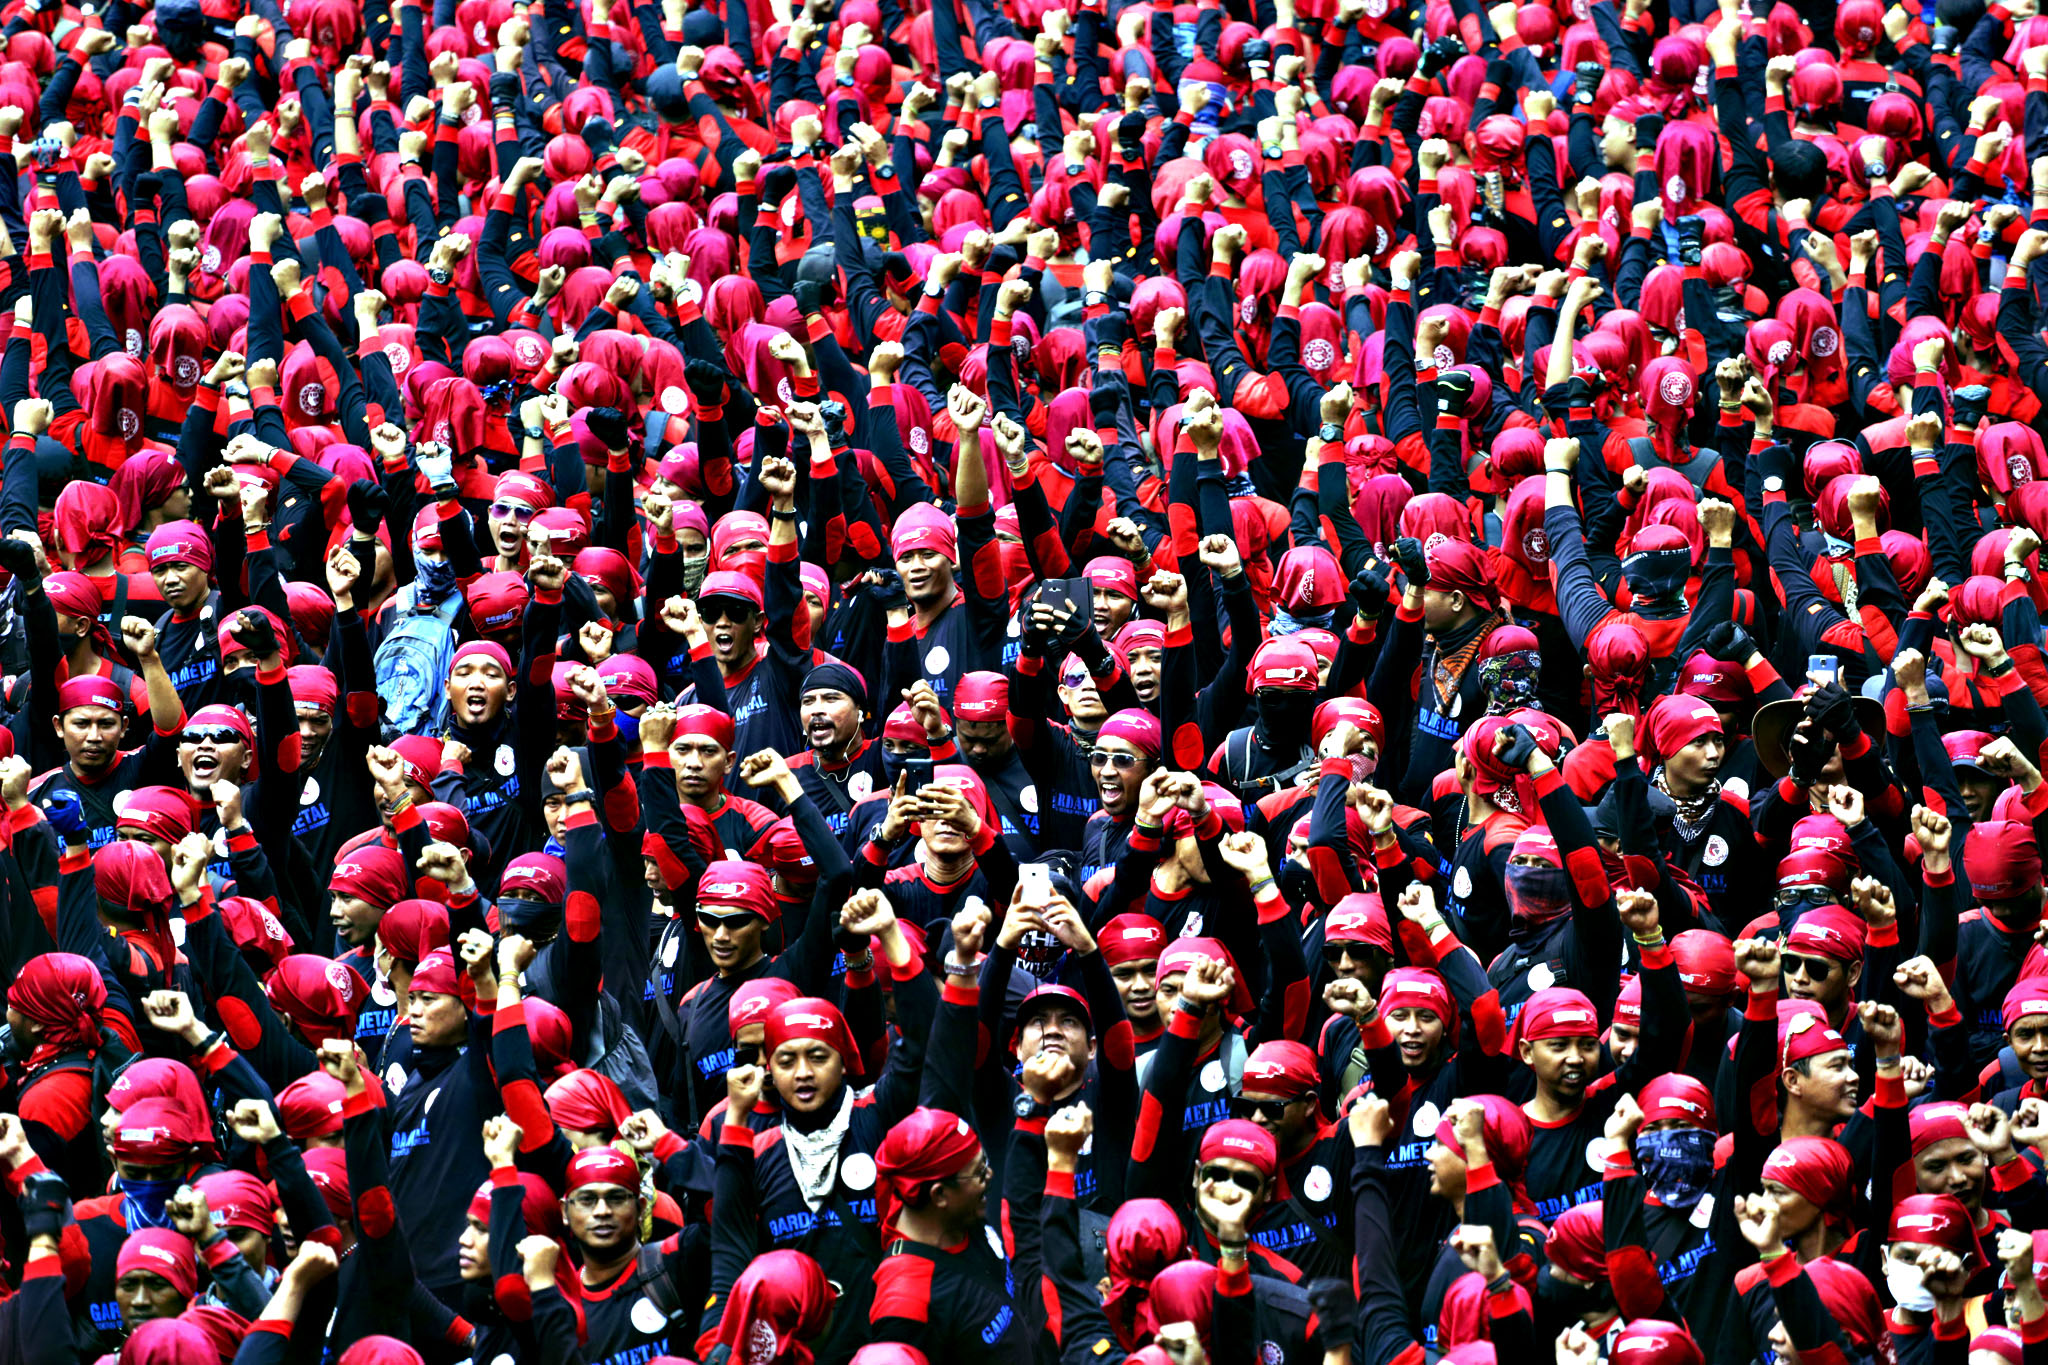 Indonesian workers shout slogans during a rally in Jakarta, Indonesia, Tuesday, Sept. 1, 2015. Thousands of factory workers staged the rally in the capital to protest against outsourcing and low wages